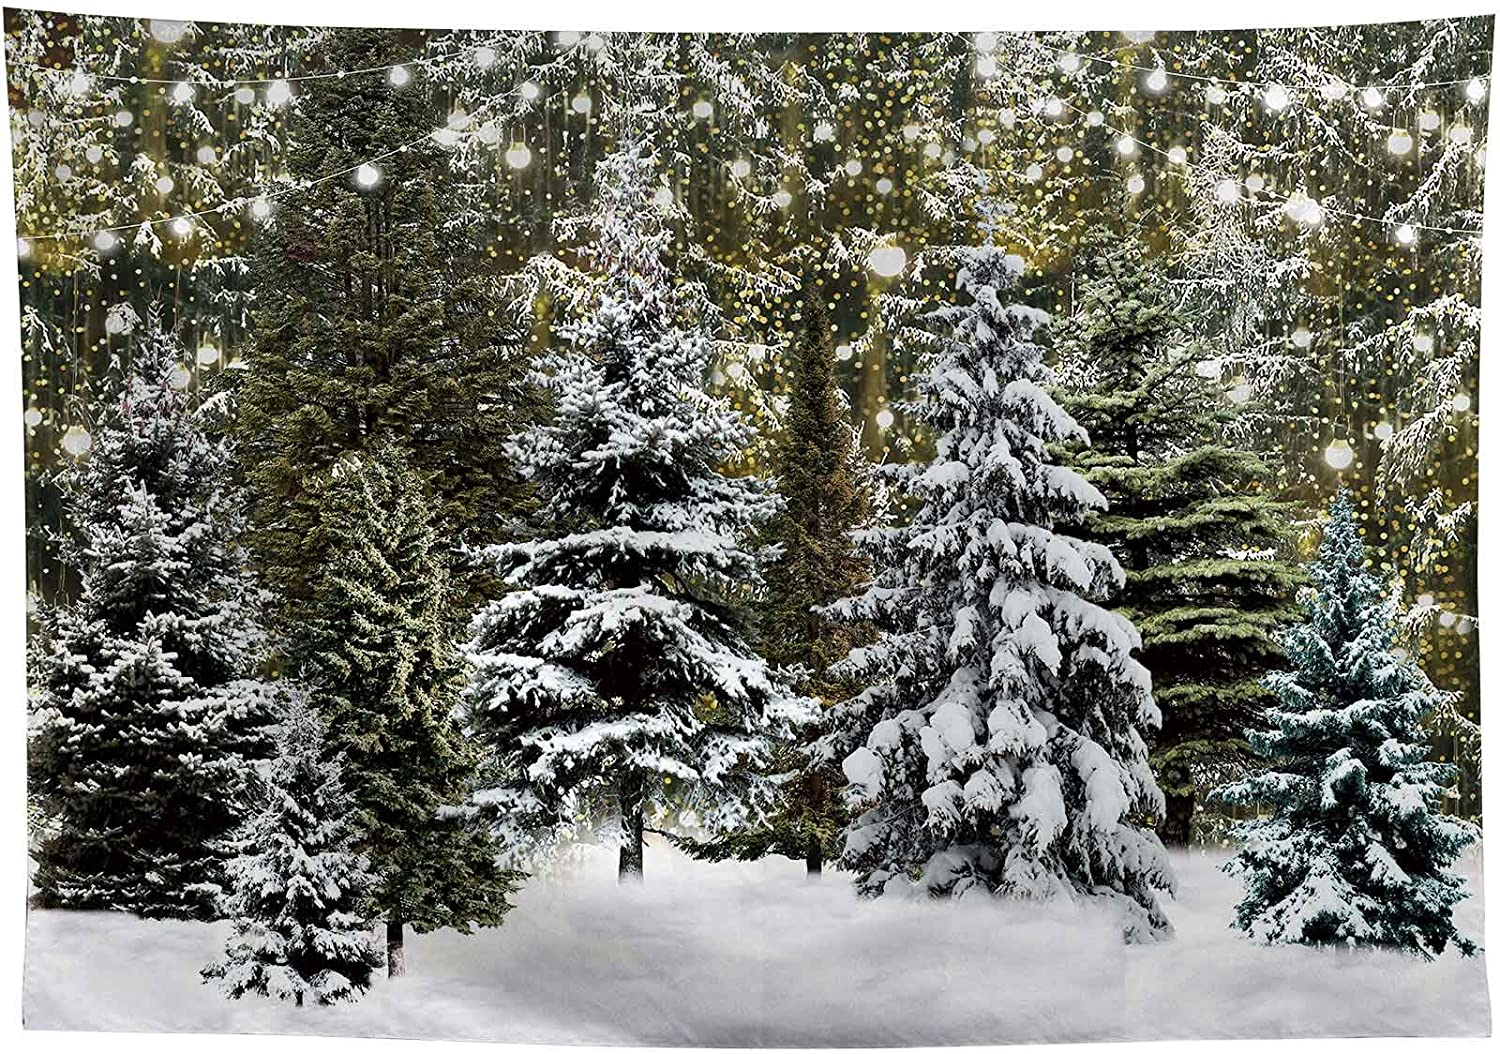 Allenjoy 8x6ft Winter Forest Landscape Photography Backdrop Nature Scenery Glitter Snowflake Pine Trees Background for Christmas Happy New Year Party Decor Banner Portrait Photo Booth Props